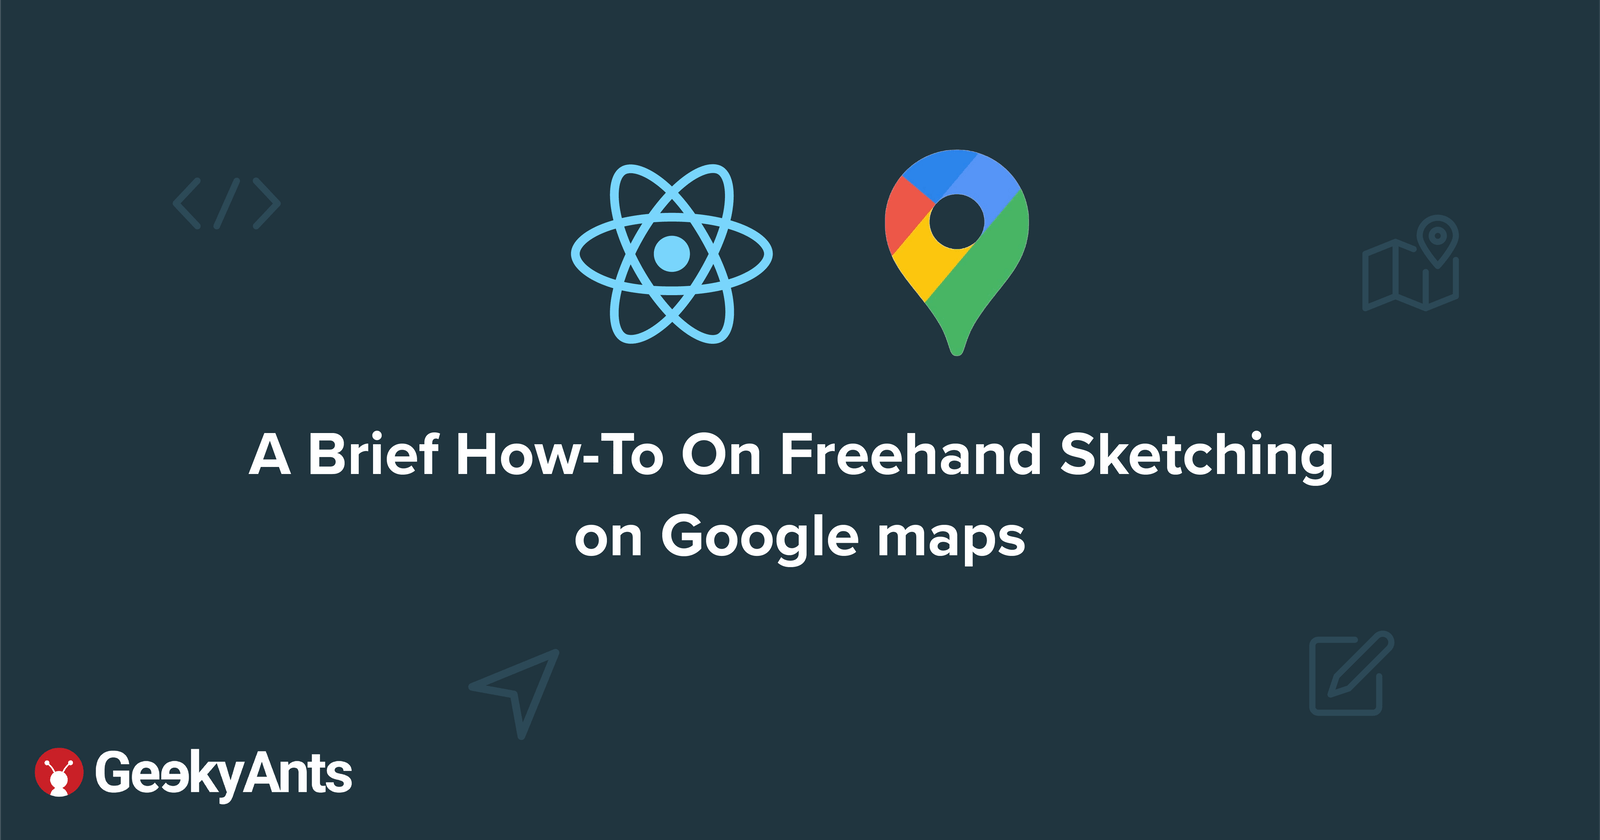 A Brief How-To On Freehand Sketching On Google Maps